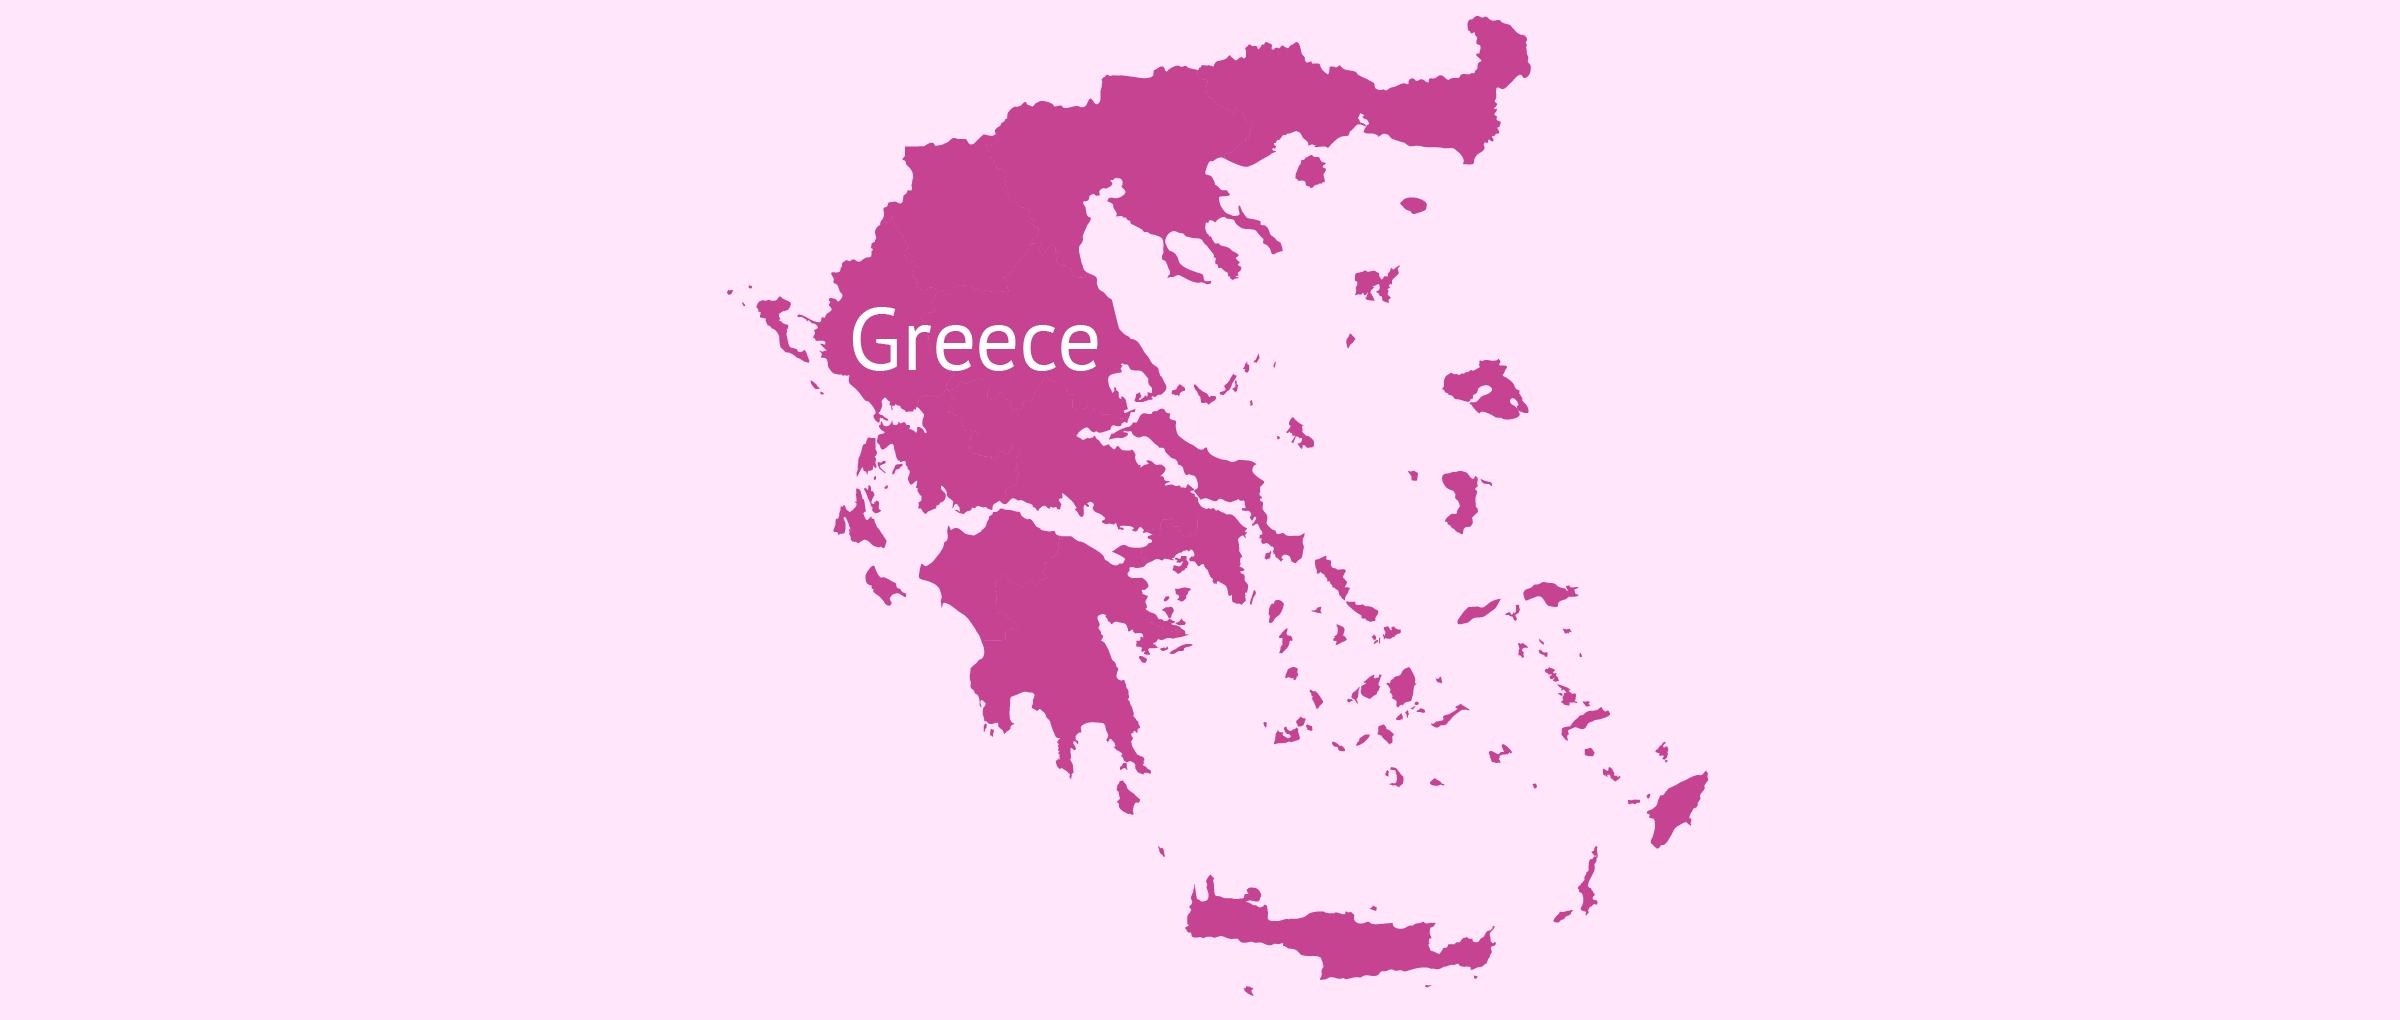 Is Surrogacy Legal in Greece? - Law, Requirements & Cost